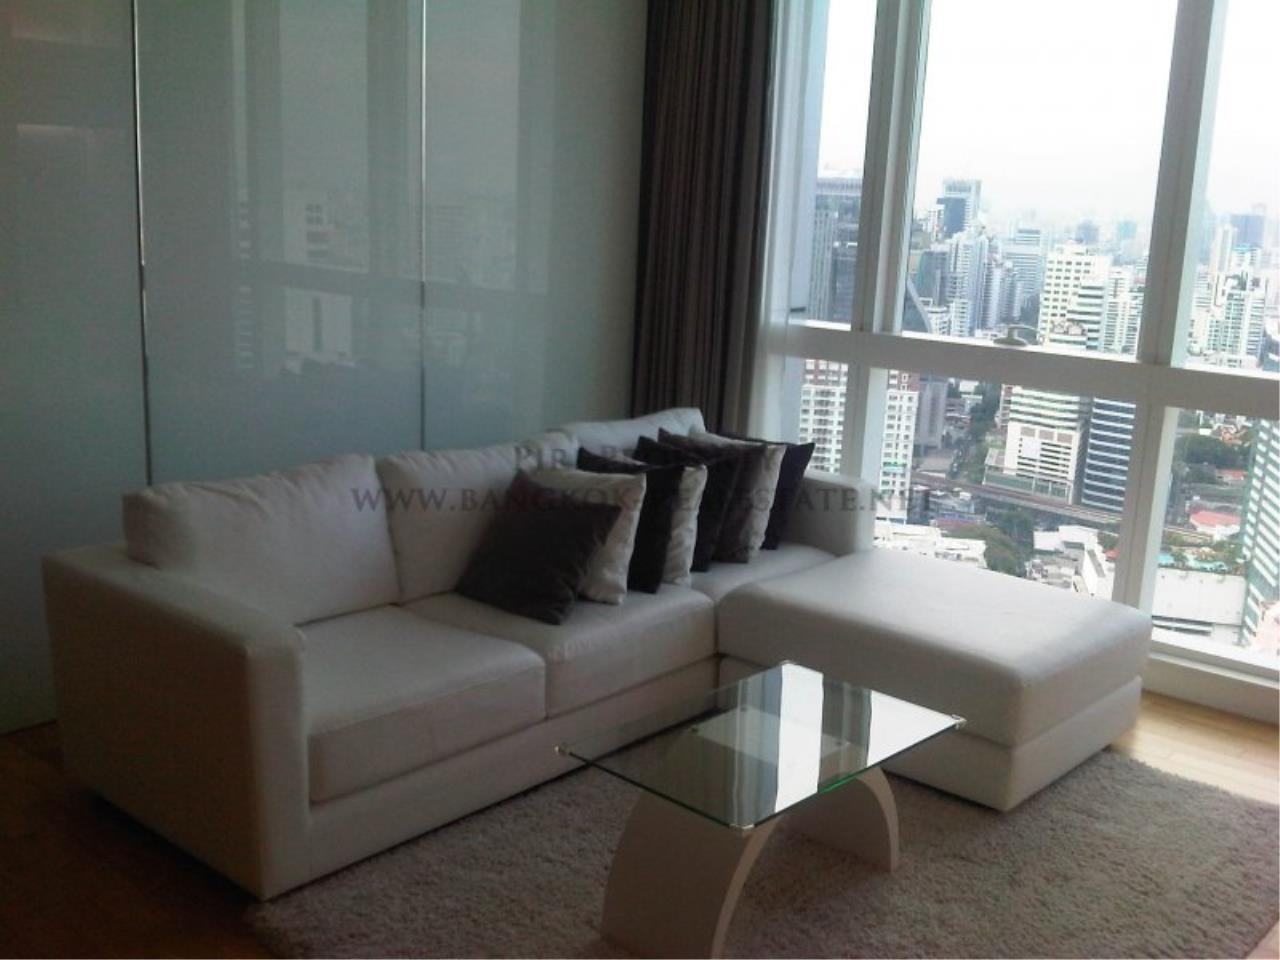 Piri Property Agency's High Floor Condo - Millennium Reisdence One Bedroom for Rent - 37th Floor 1